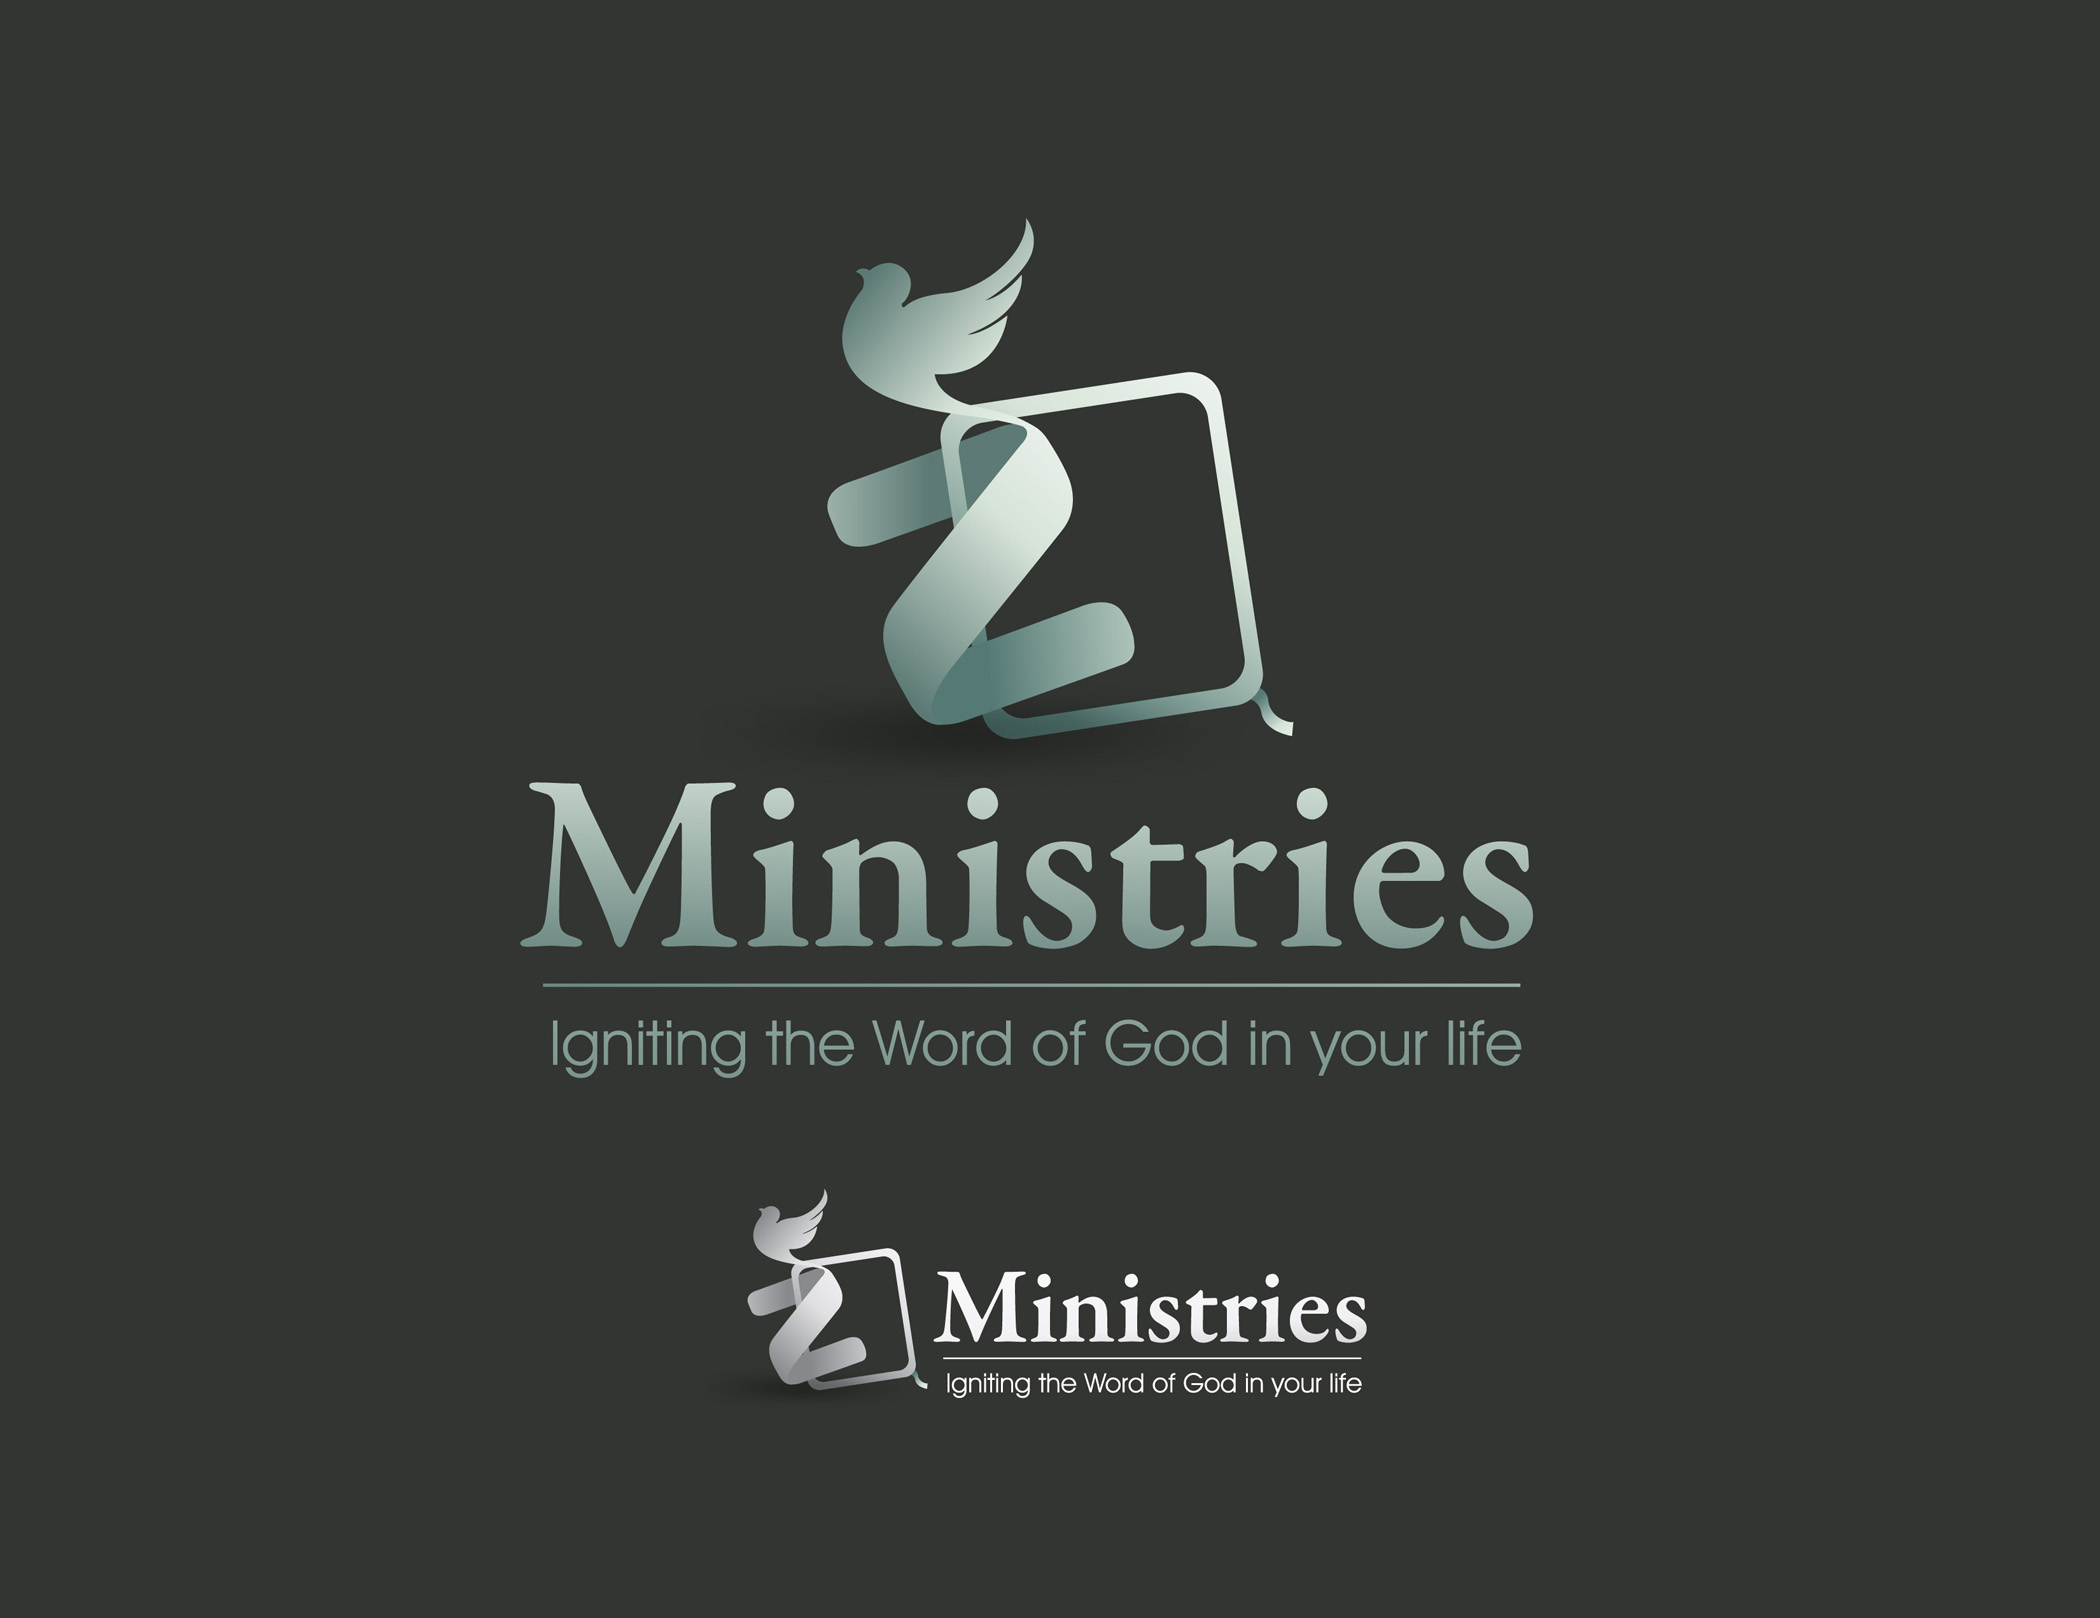 Logo Design by Mark Anthony Moreto Jordan - Entry No. 41 in the Logo Design Contest Artistic Logo Design for Z Ministries.